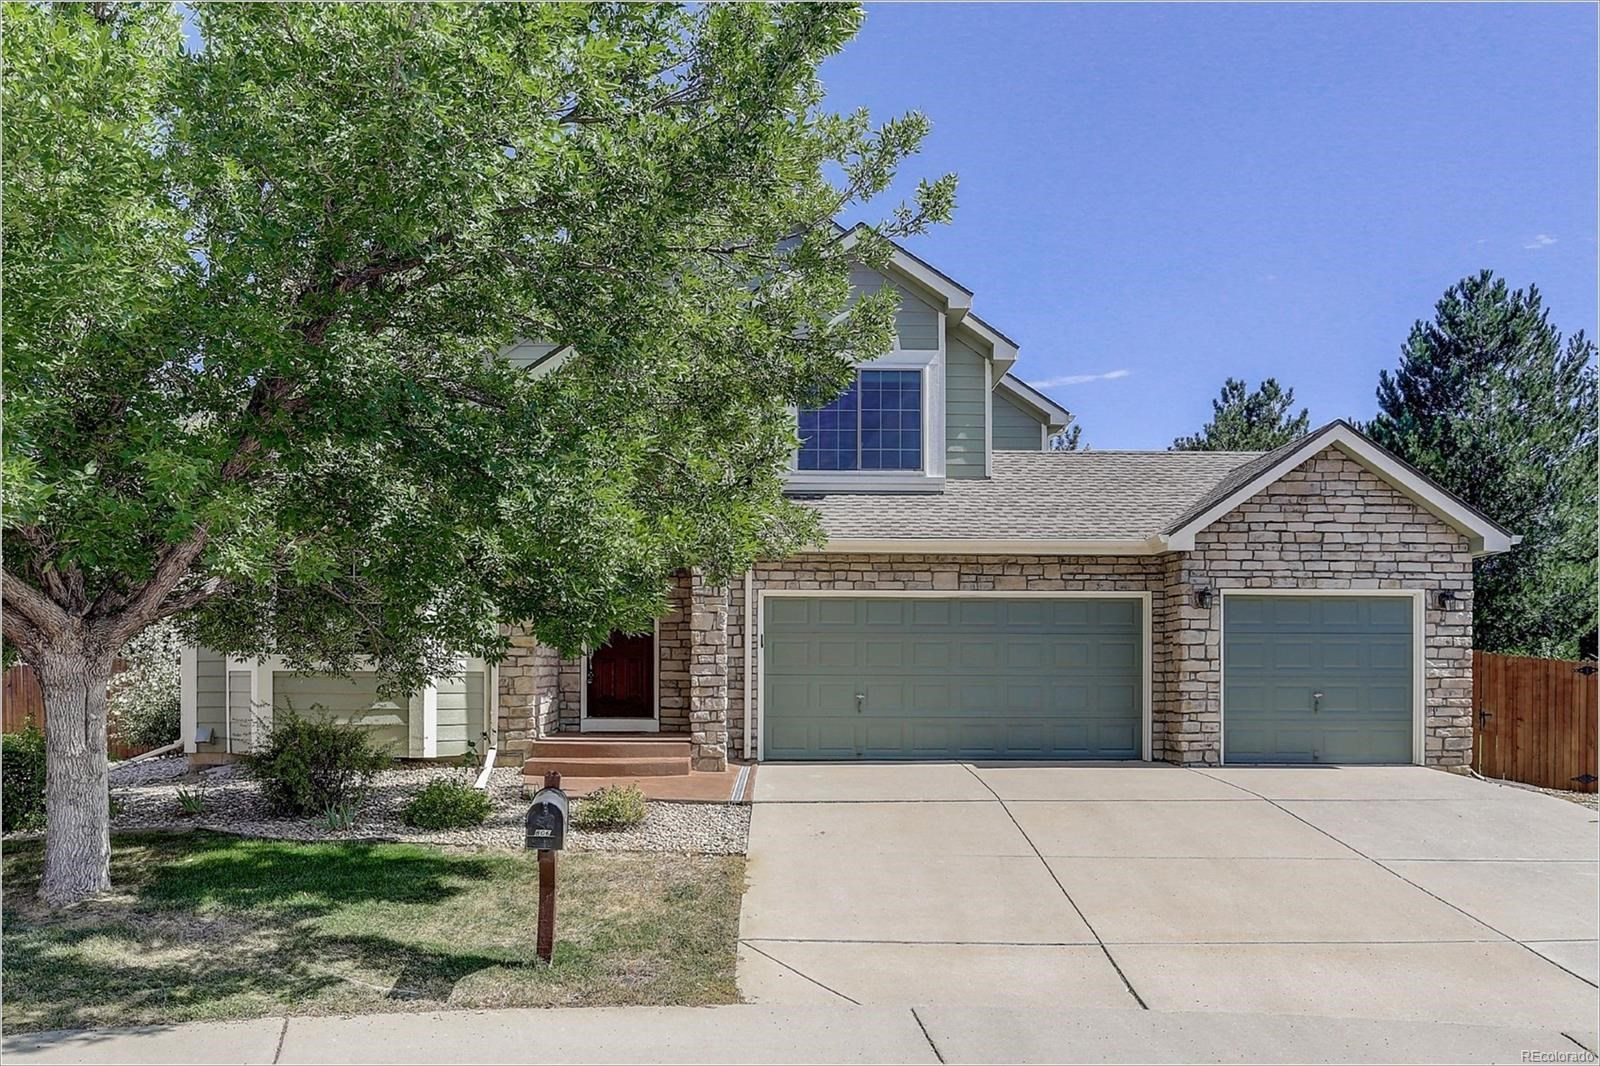 MLS# 8327774 - 2 - 806 W 127th Court, Westminster, CO 80234